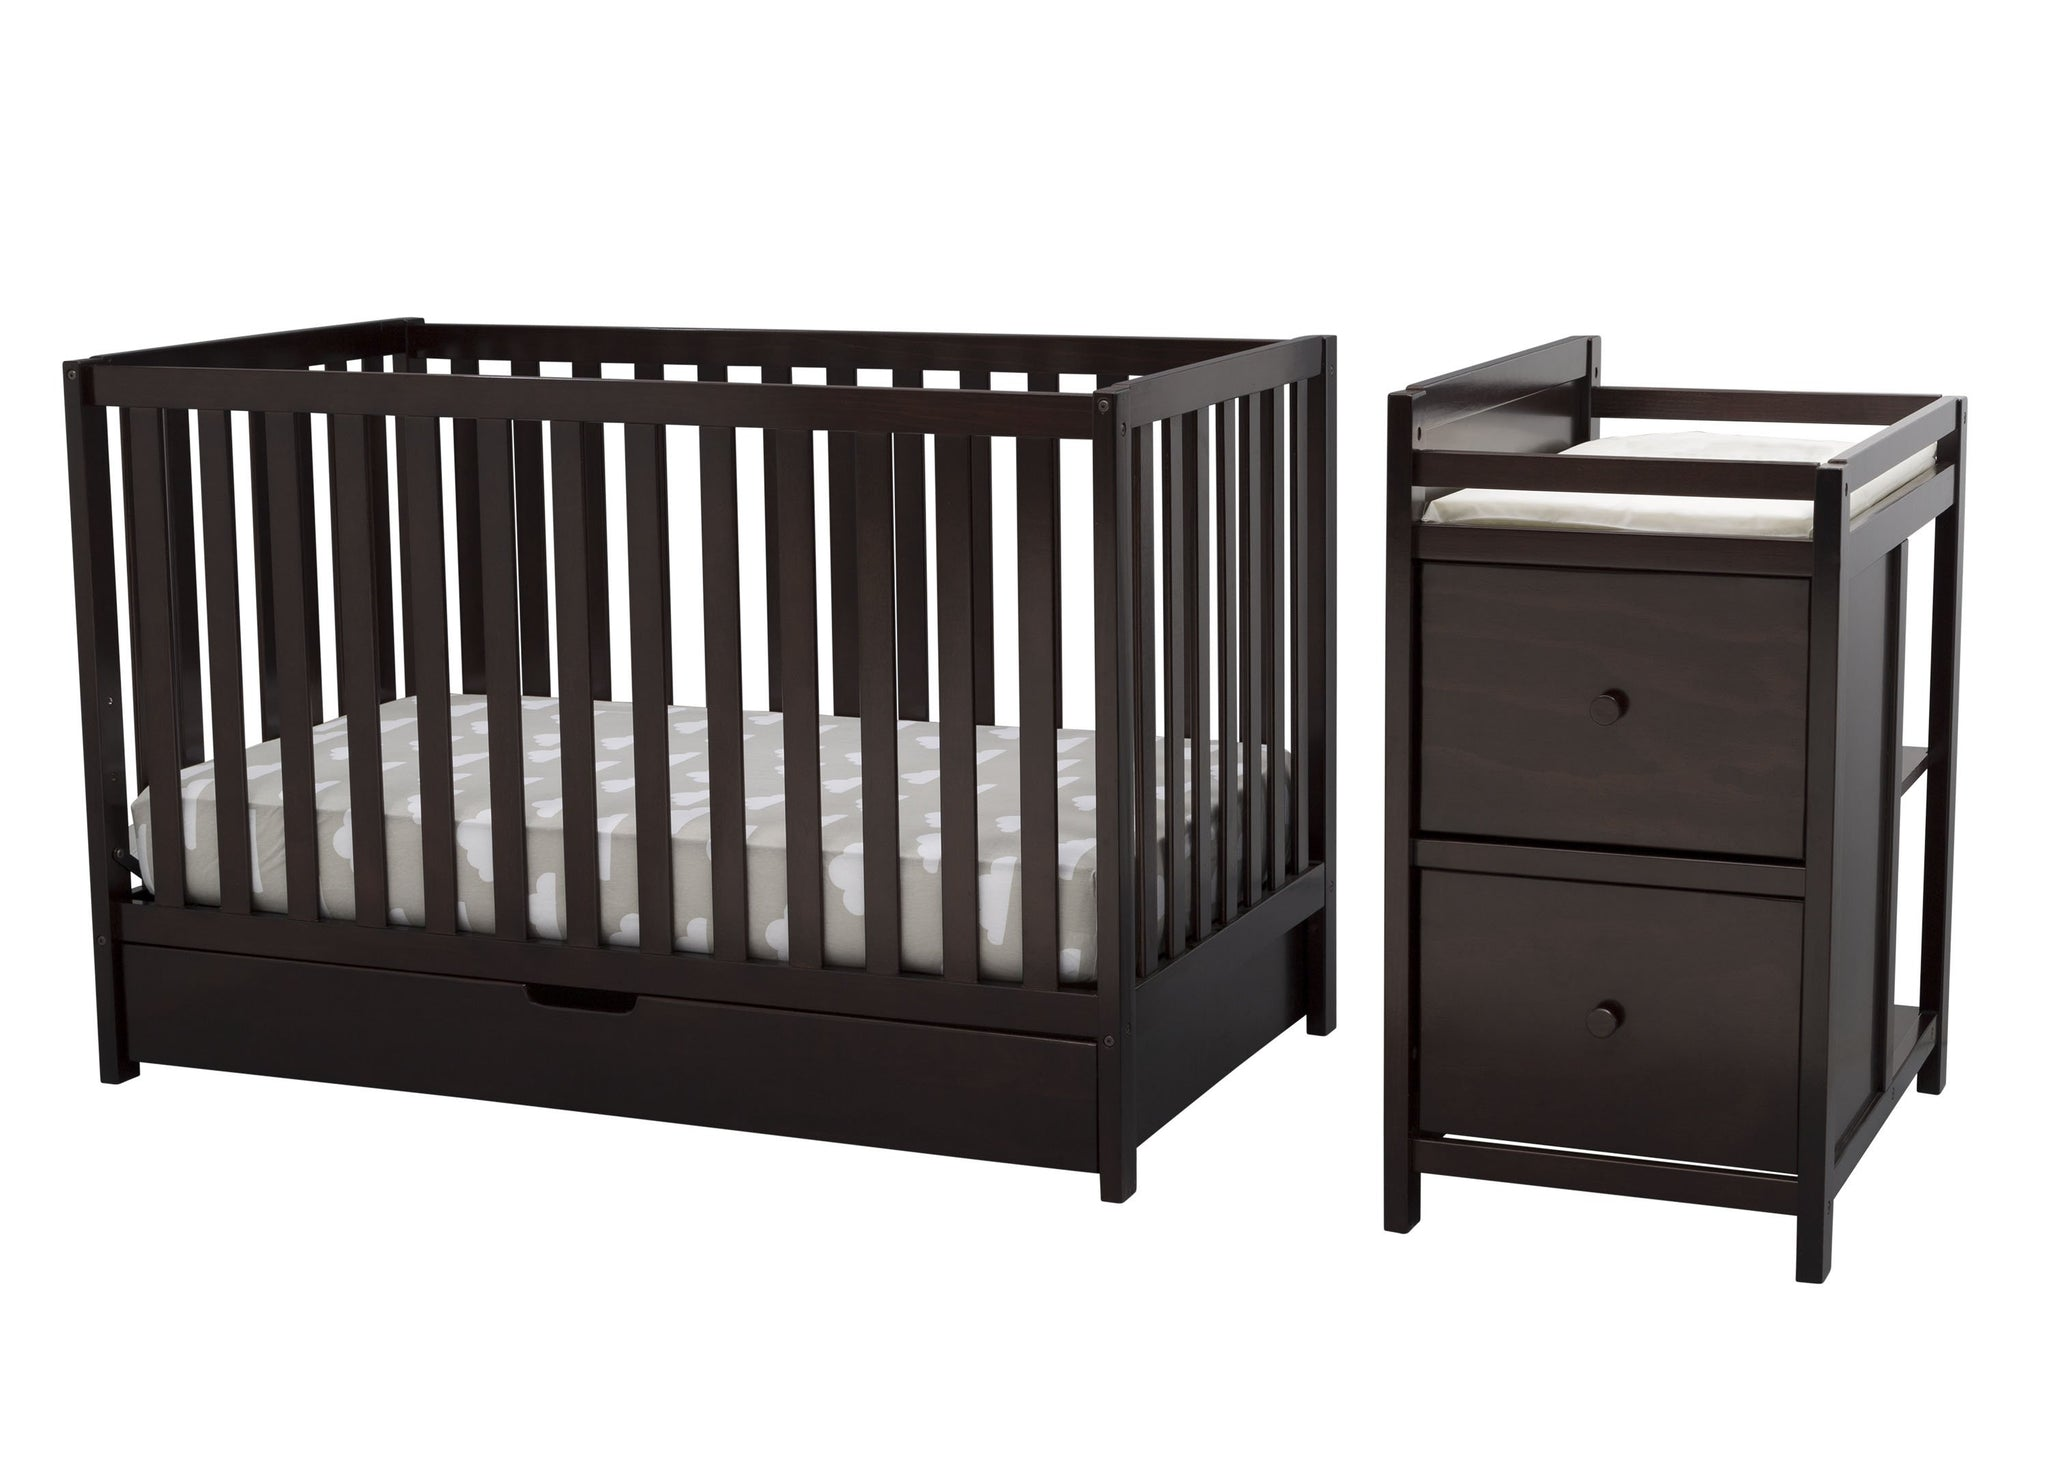 Delta Children Dark Chocolate (207) Luna Convertible Crib N with Under Drawer (536160), Silo Detached, c3c